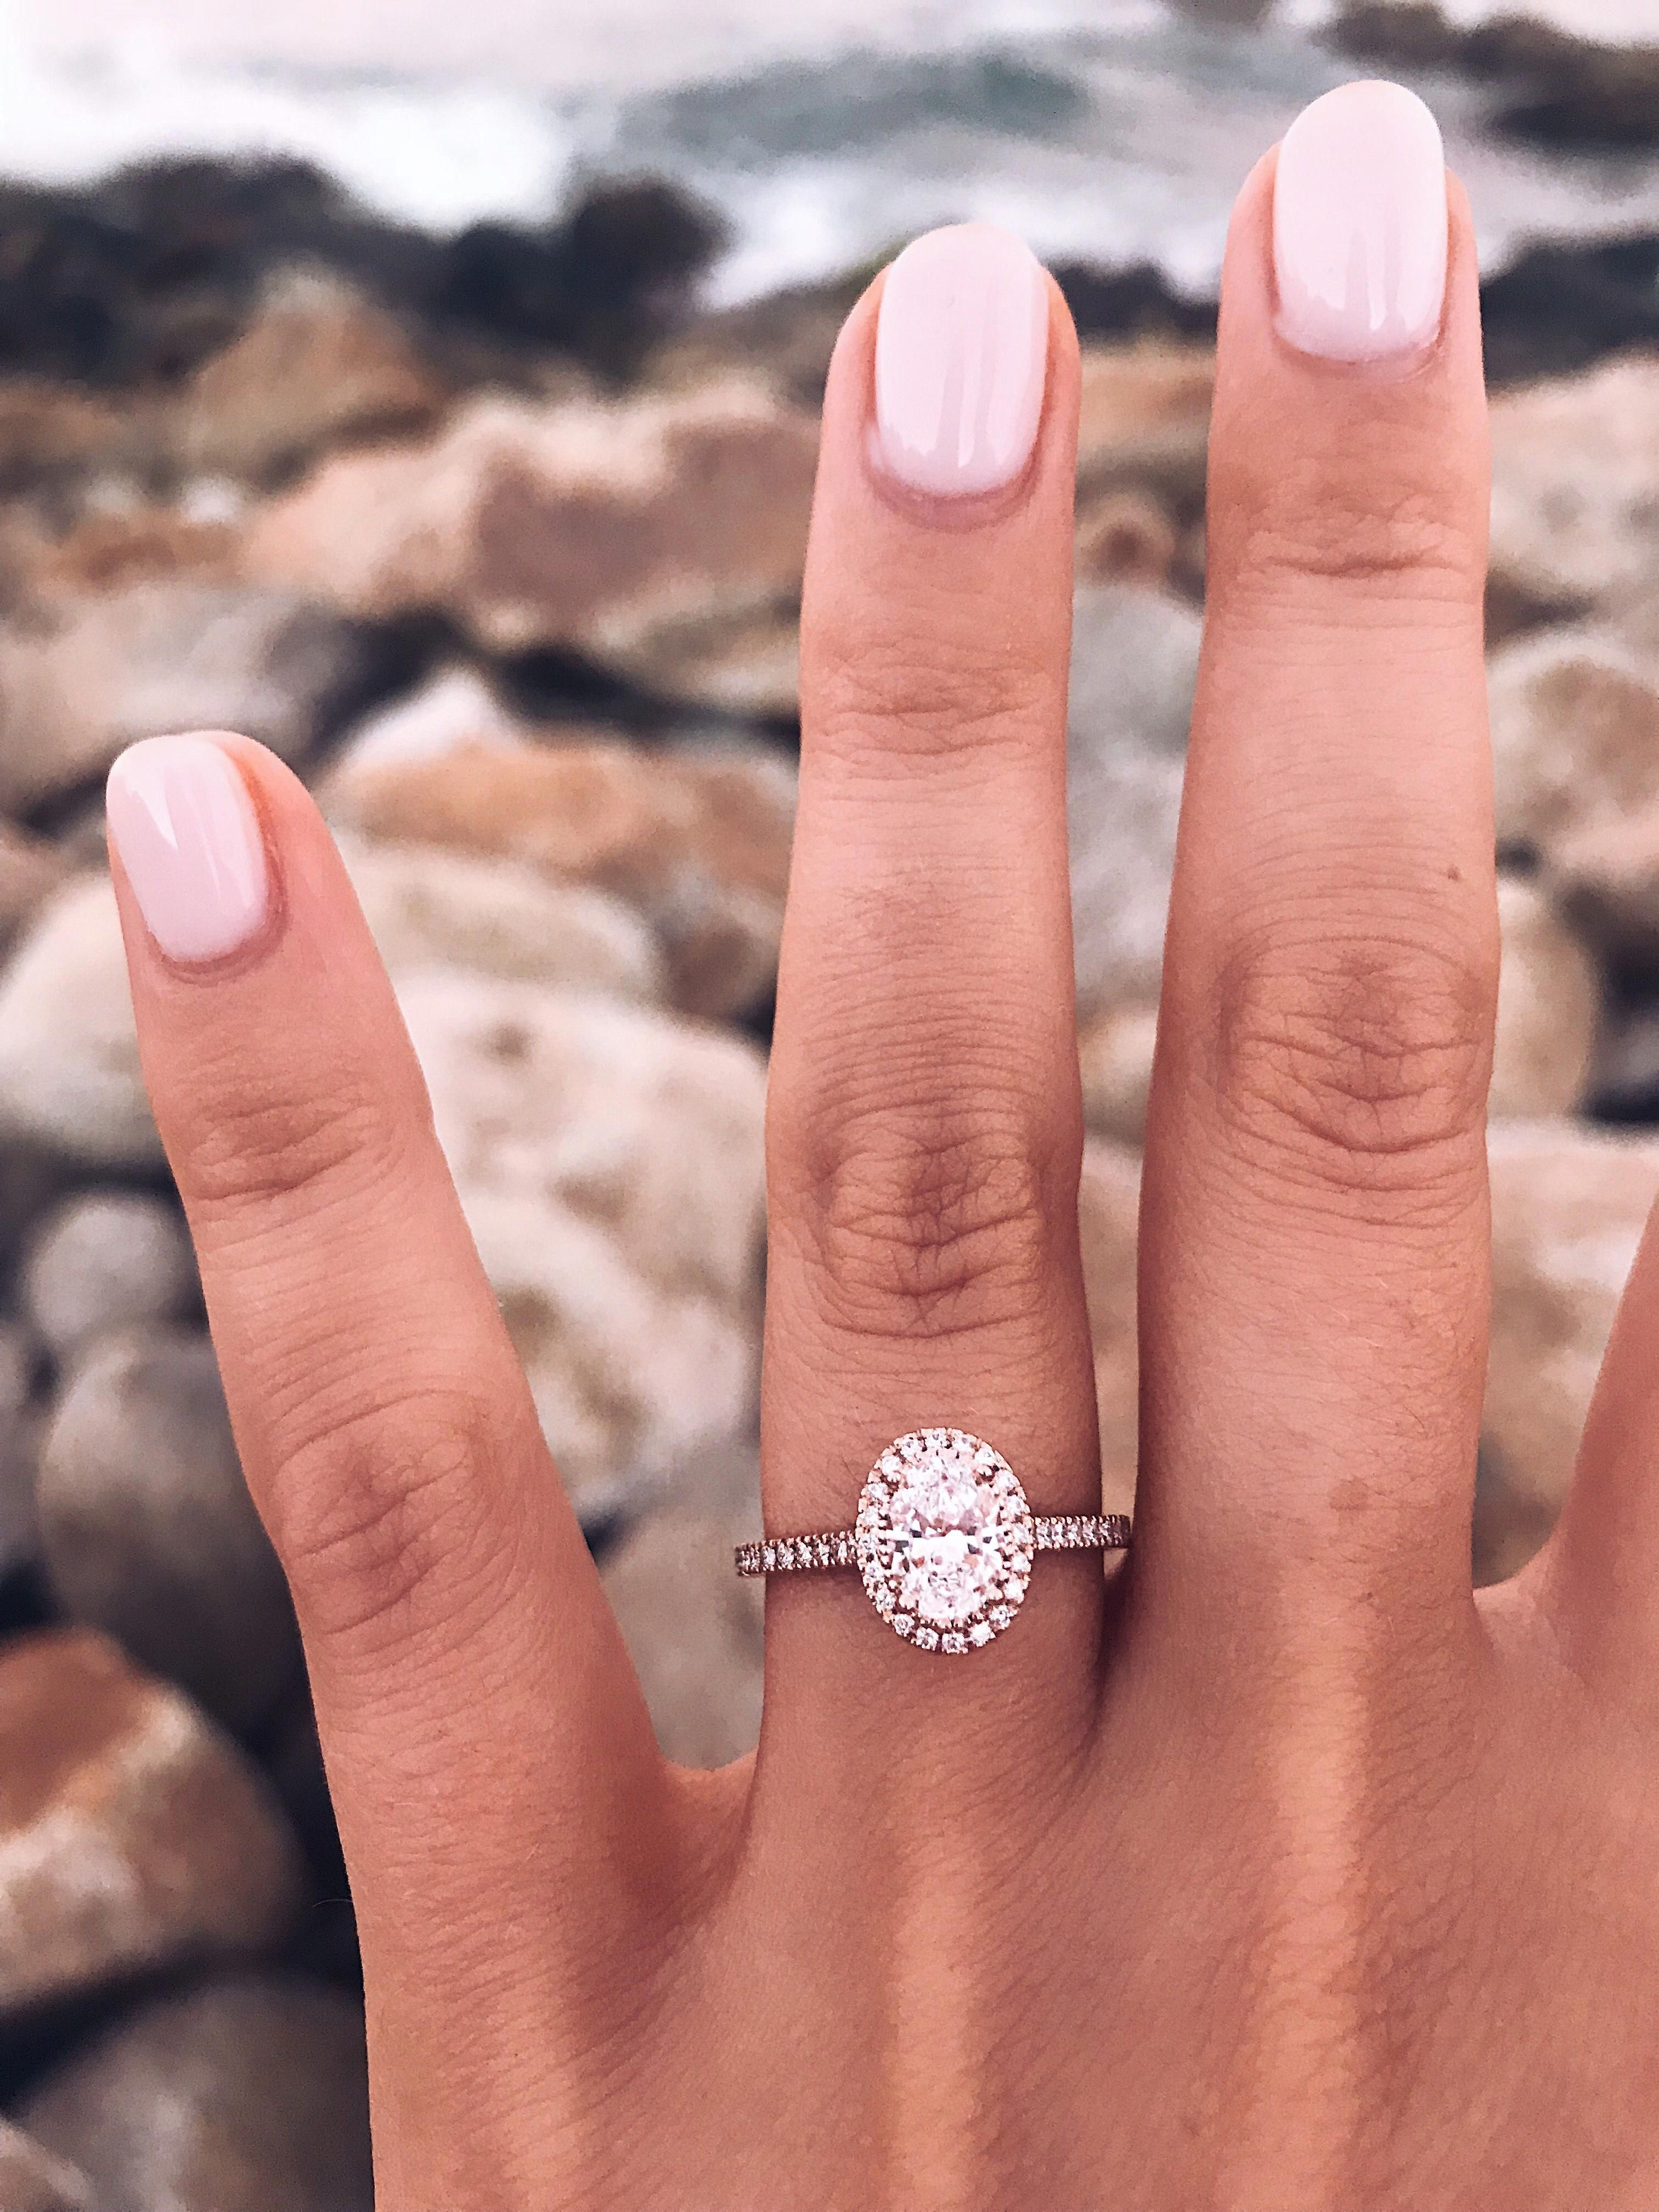 solitaire wedding rings pin# 5665588700